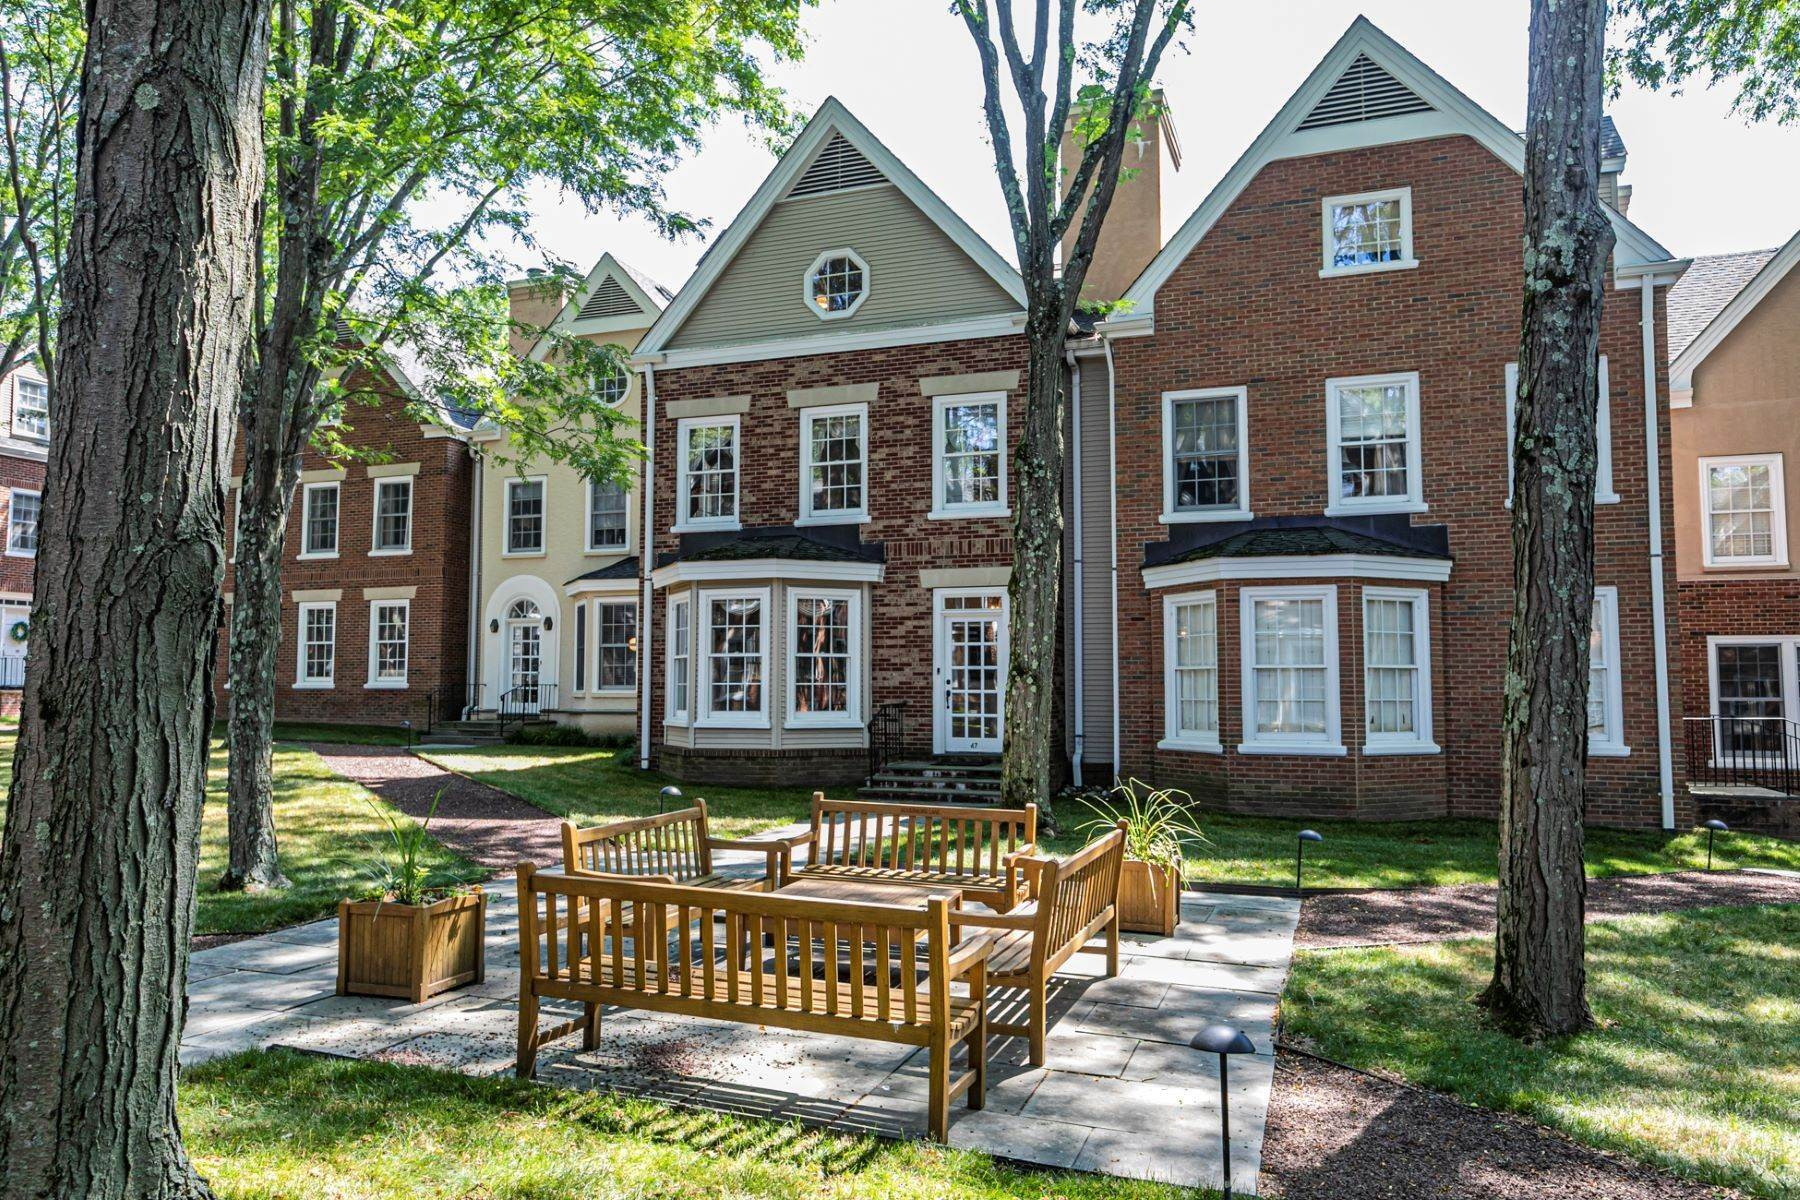 townhouses voor Verkoop op The Pinnacle of Townhouse Living 47 Governors Lane, Princeton, New Jersey 08540 Verenigde Staten